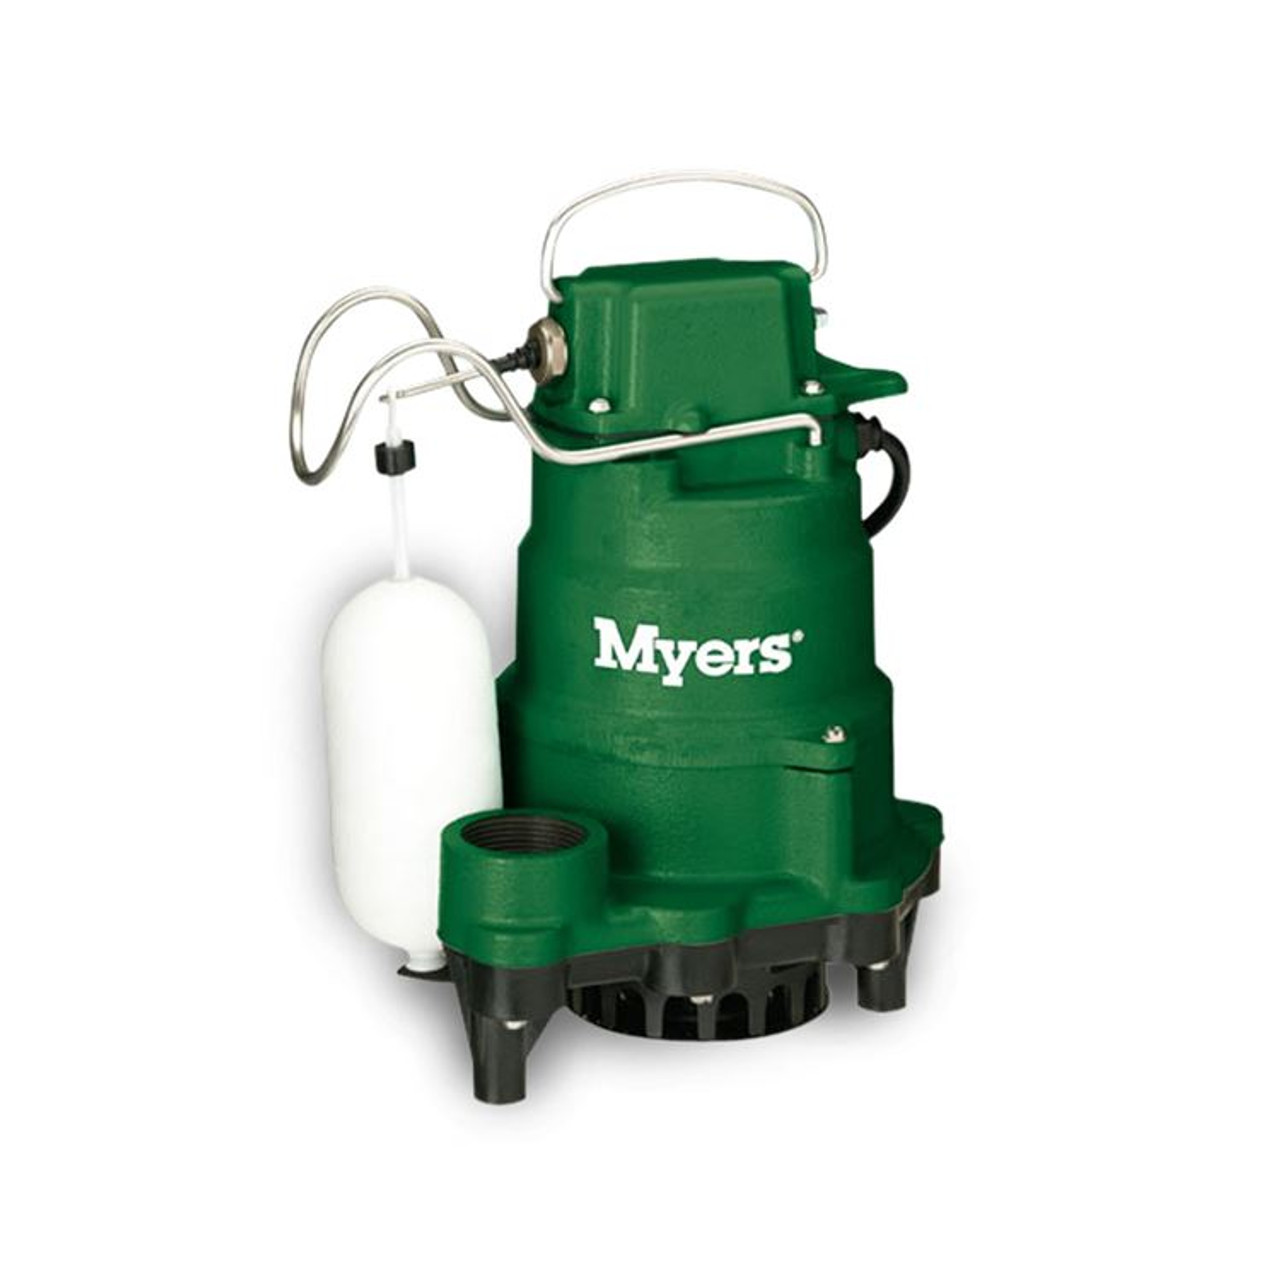 Myers MCI050 Cast Iron Sump Pump 1/2 HP